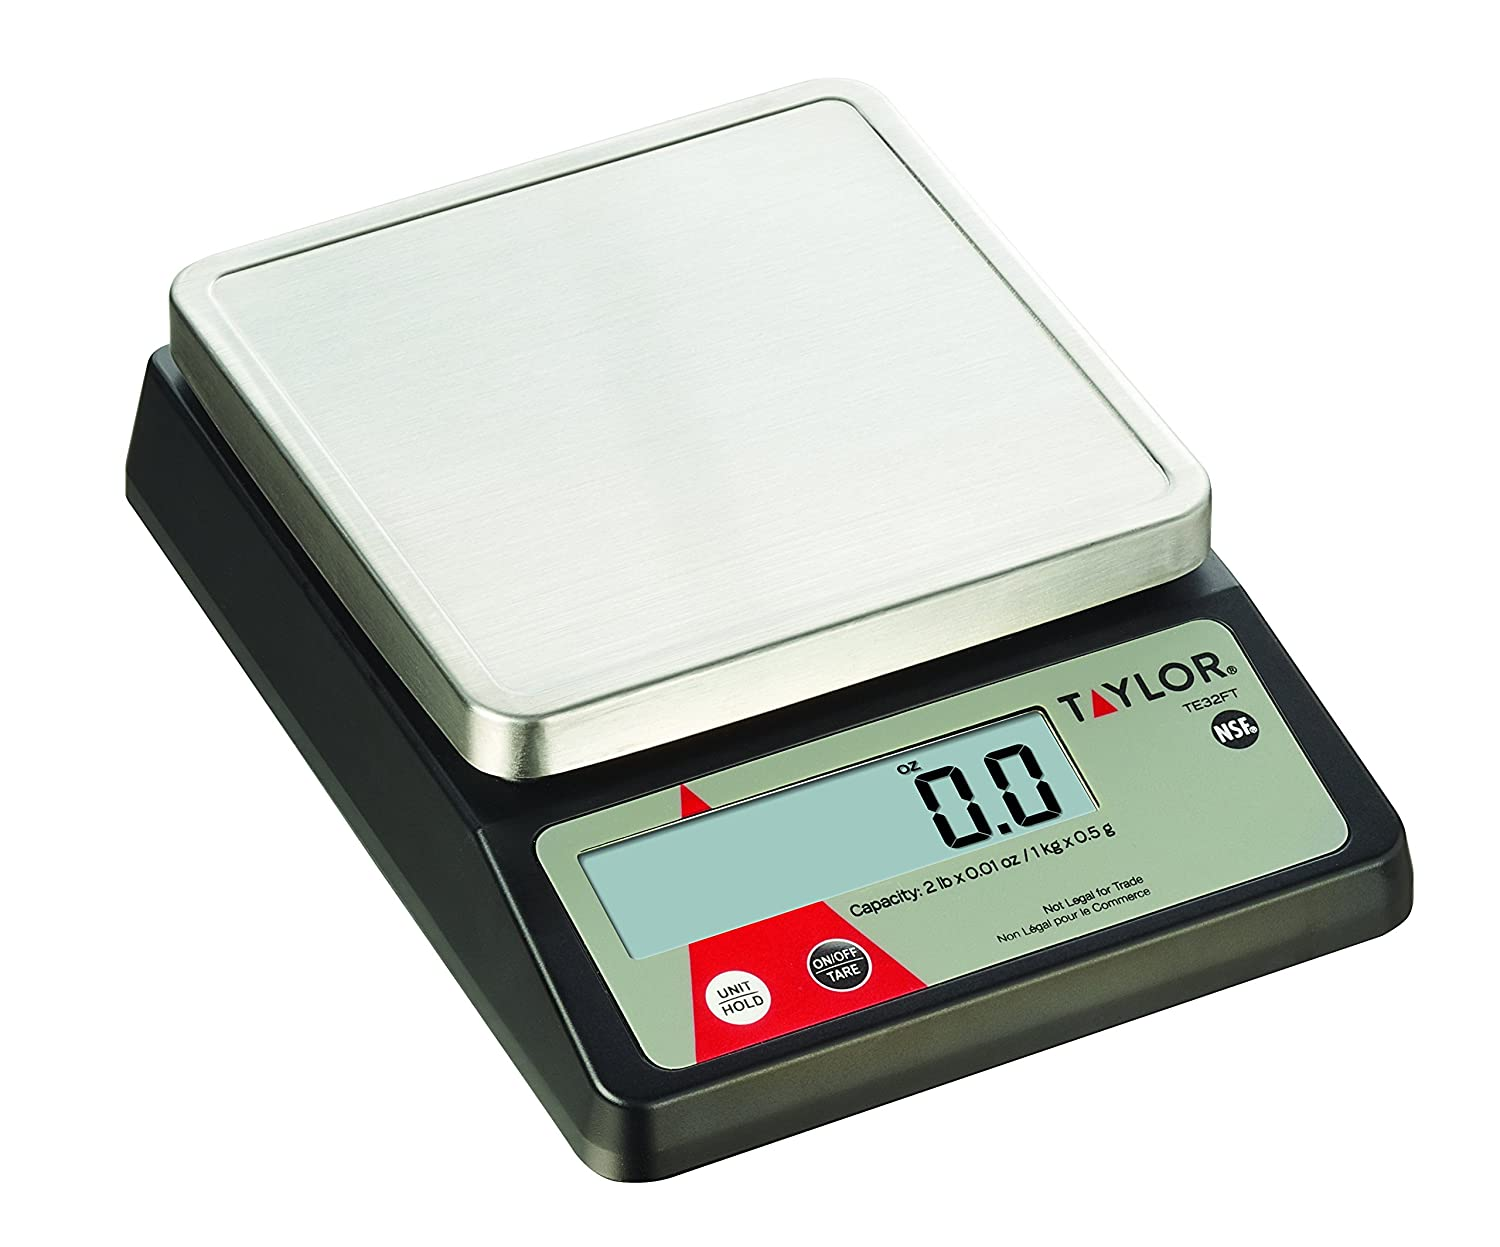 Amazon.com: Taylor Precision Products Digital Portion Control Scale ...